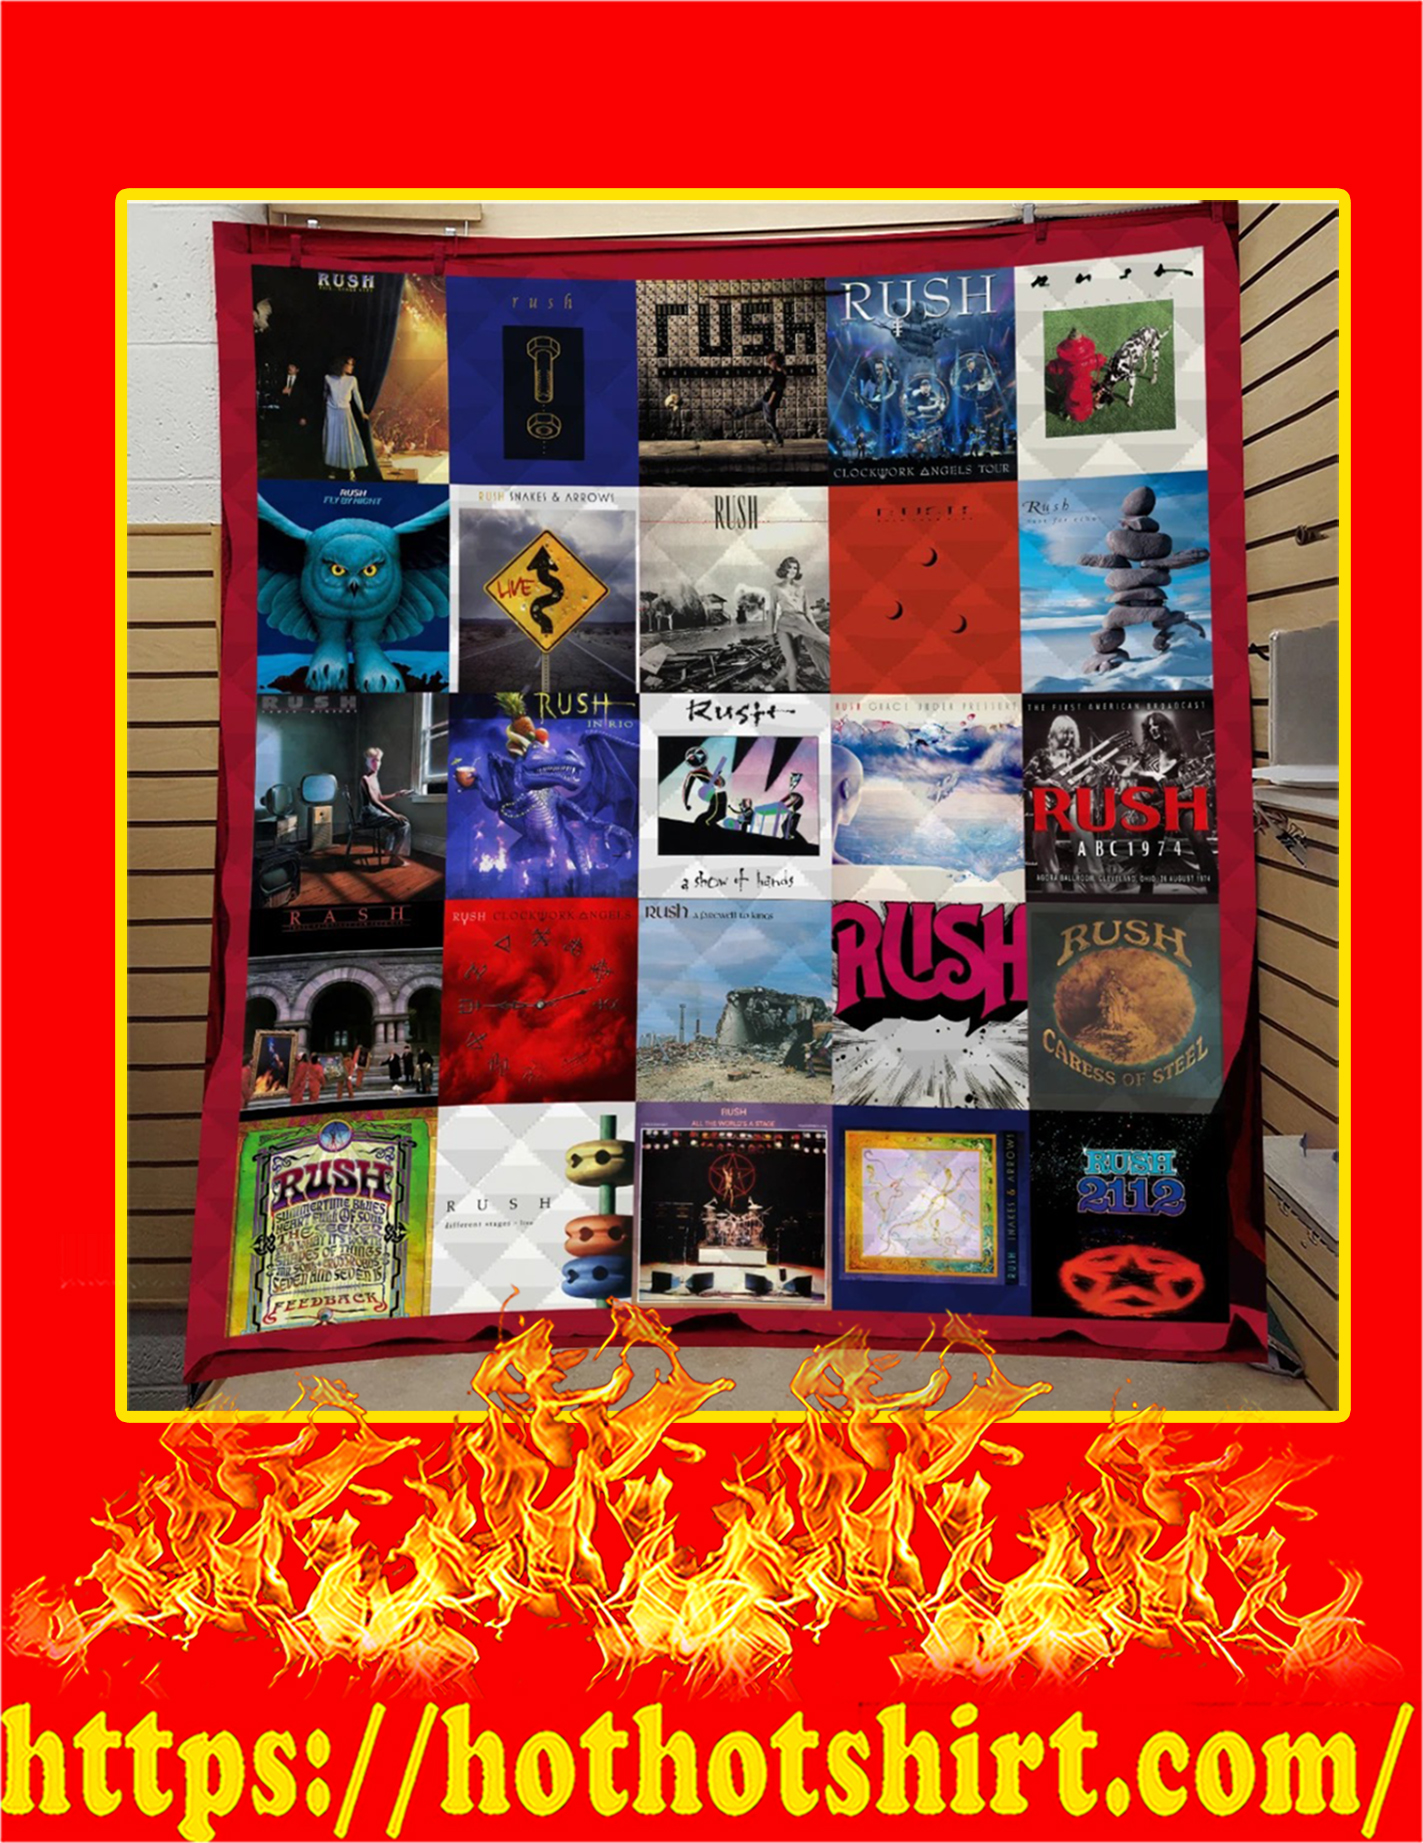 Rush Band Thank You For The Memories Signature Quilt Blanket - King